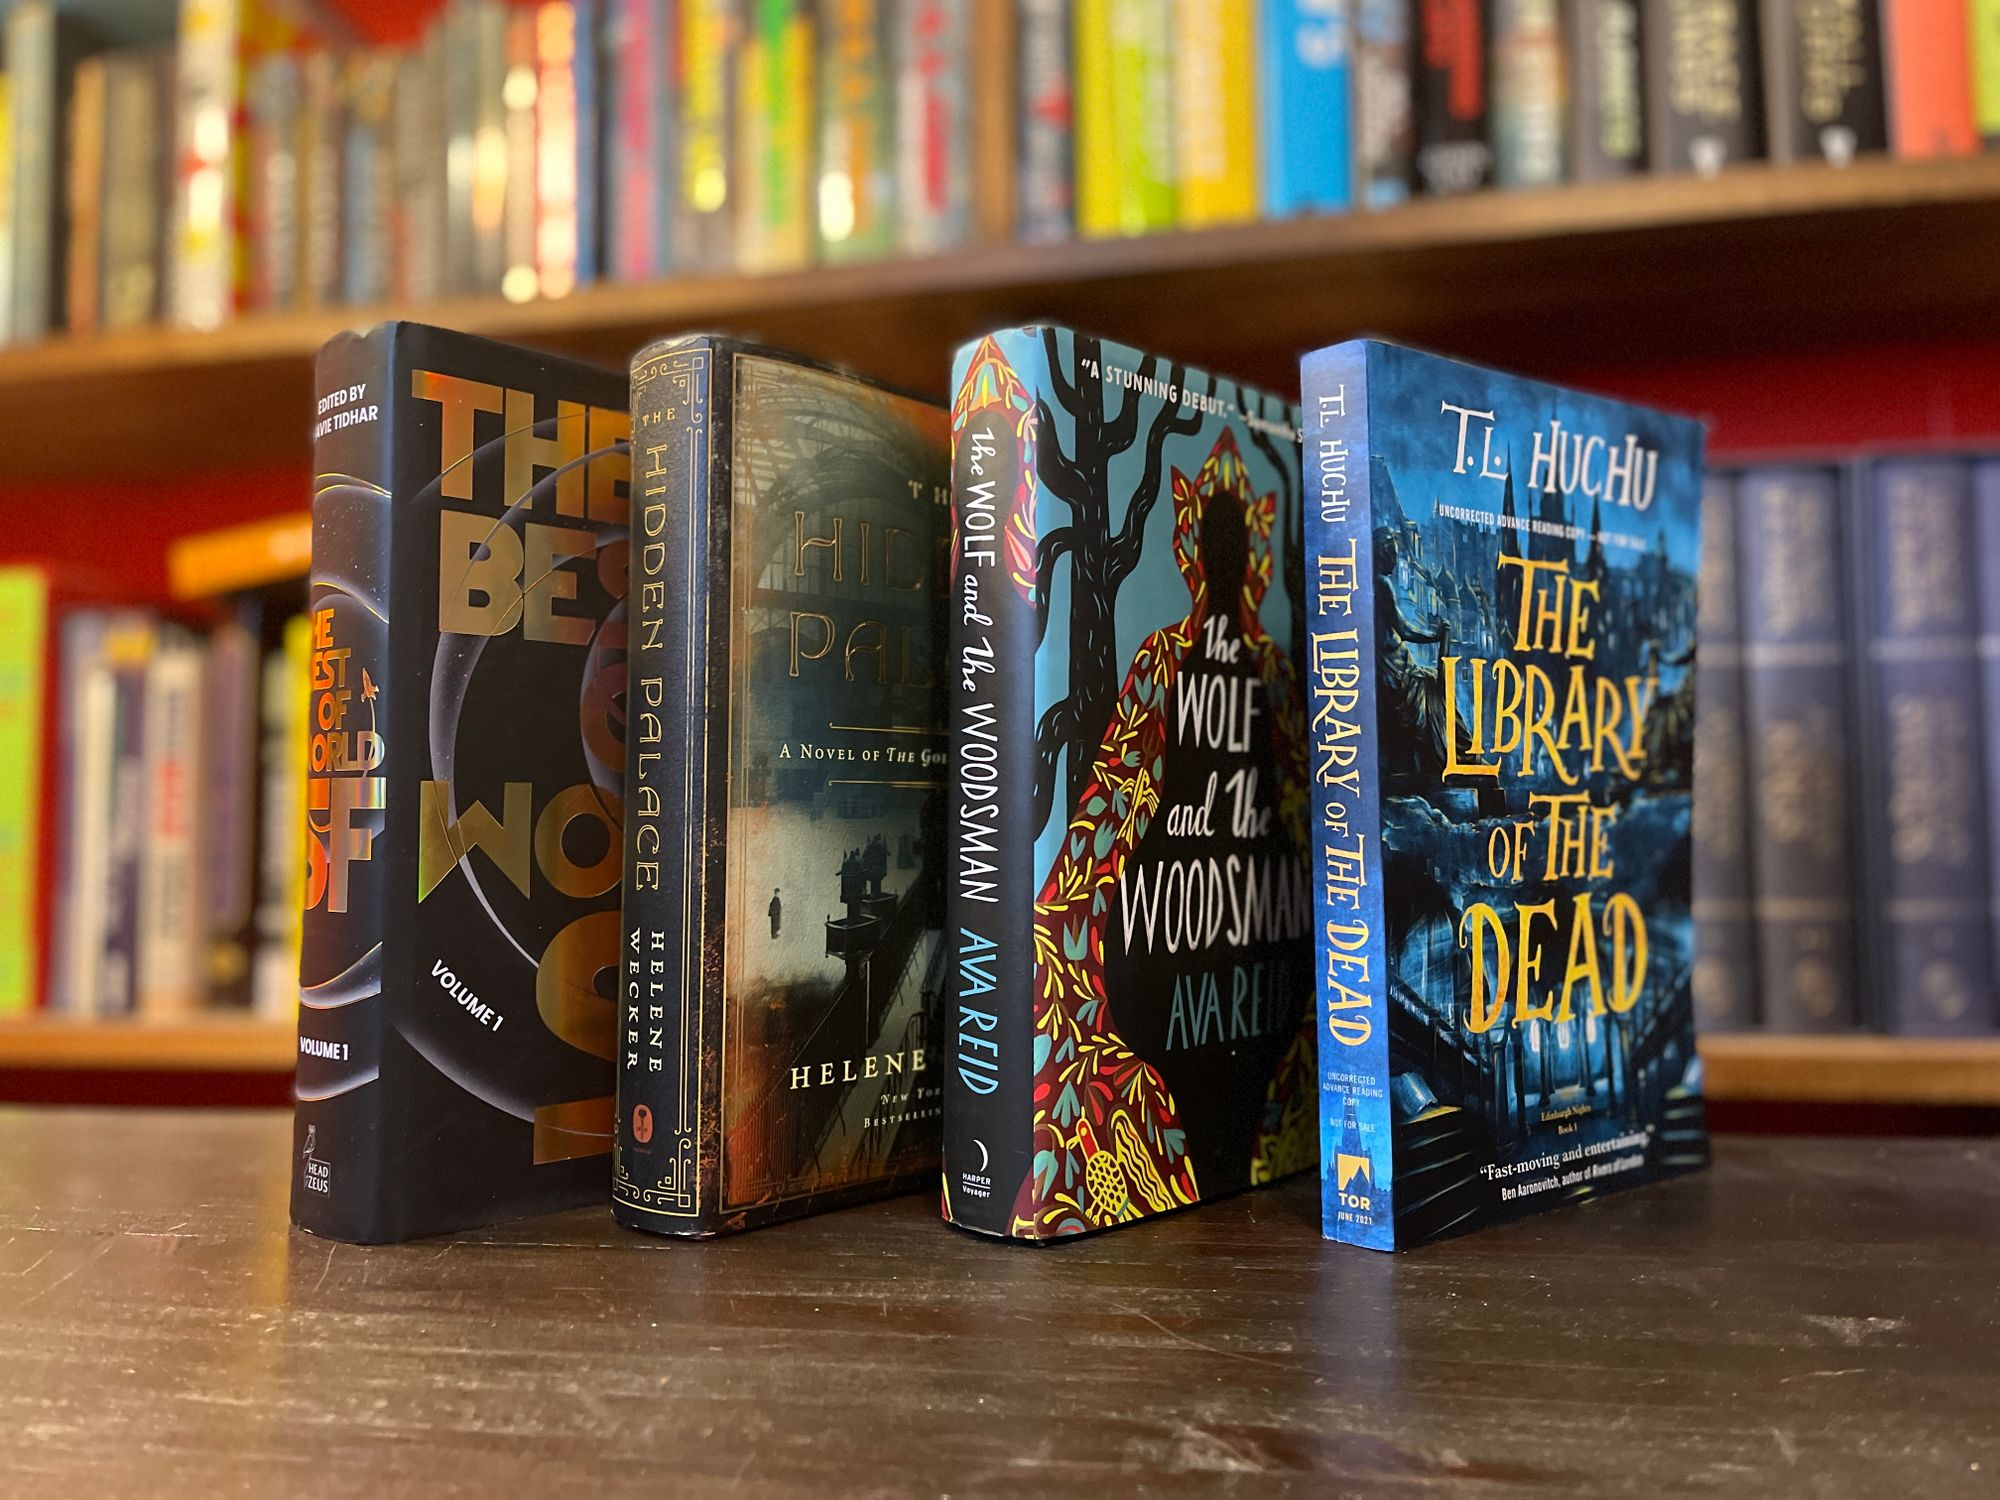 Four books standing up at an angle with a bookshelf in the background.